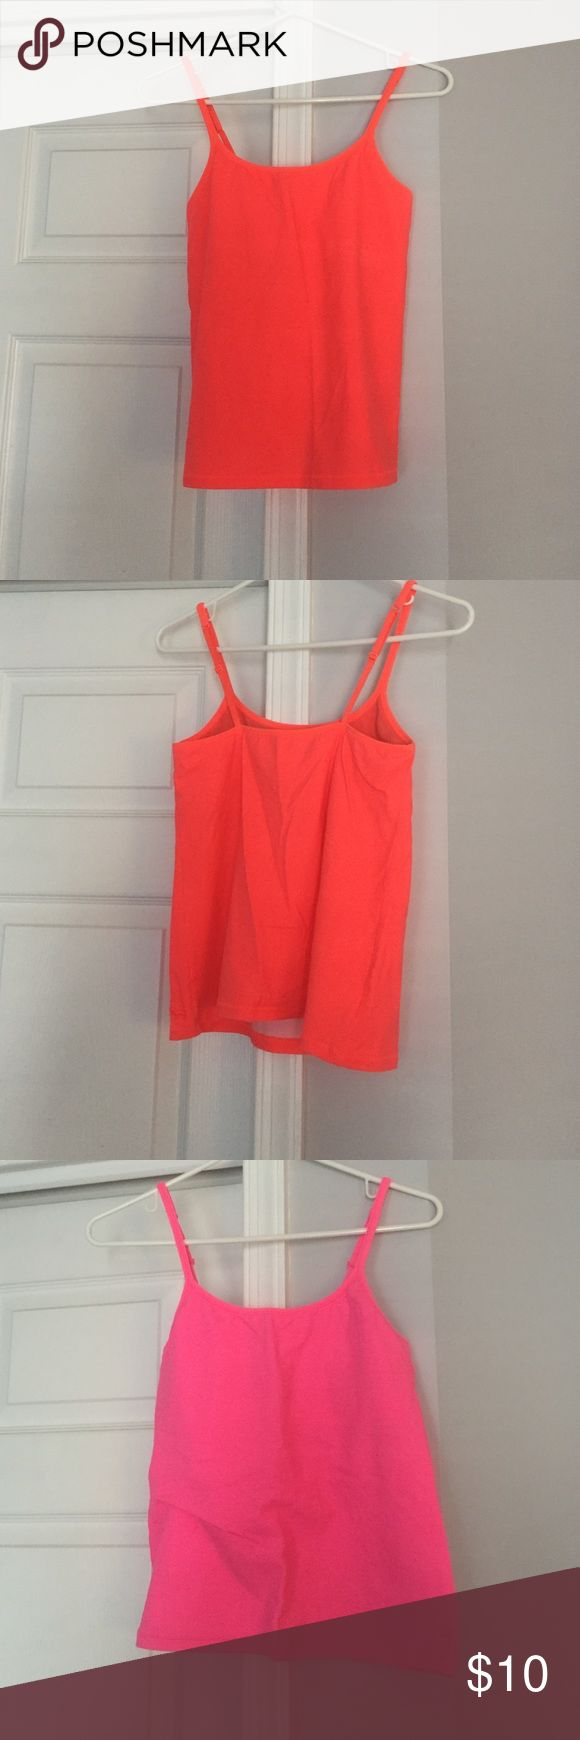 Pink Cami Worn once. No rips/tears/stains. Fits small- fits like a M. Both very bright! Neon colors! PINK Victoria's Secret Tops Camisoles